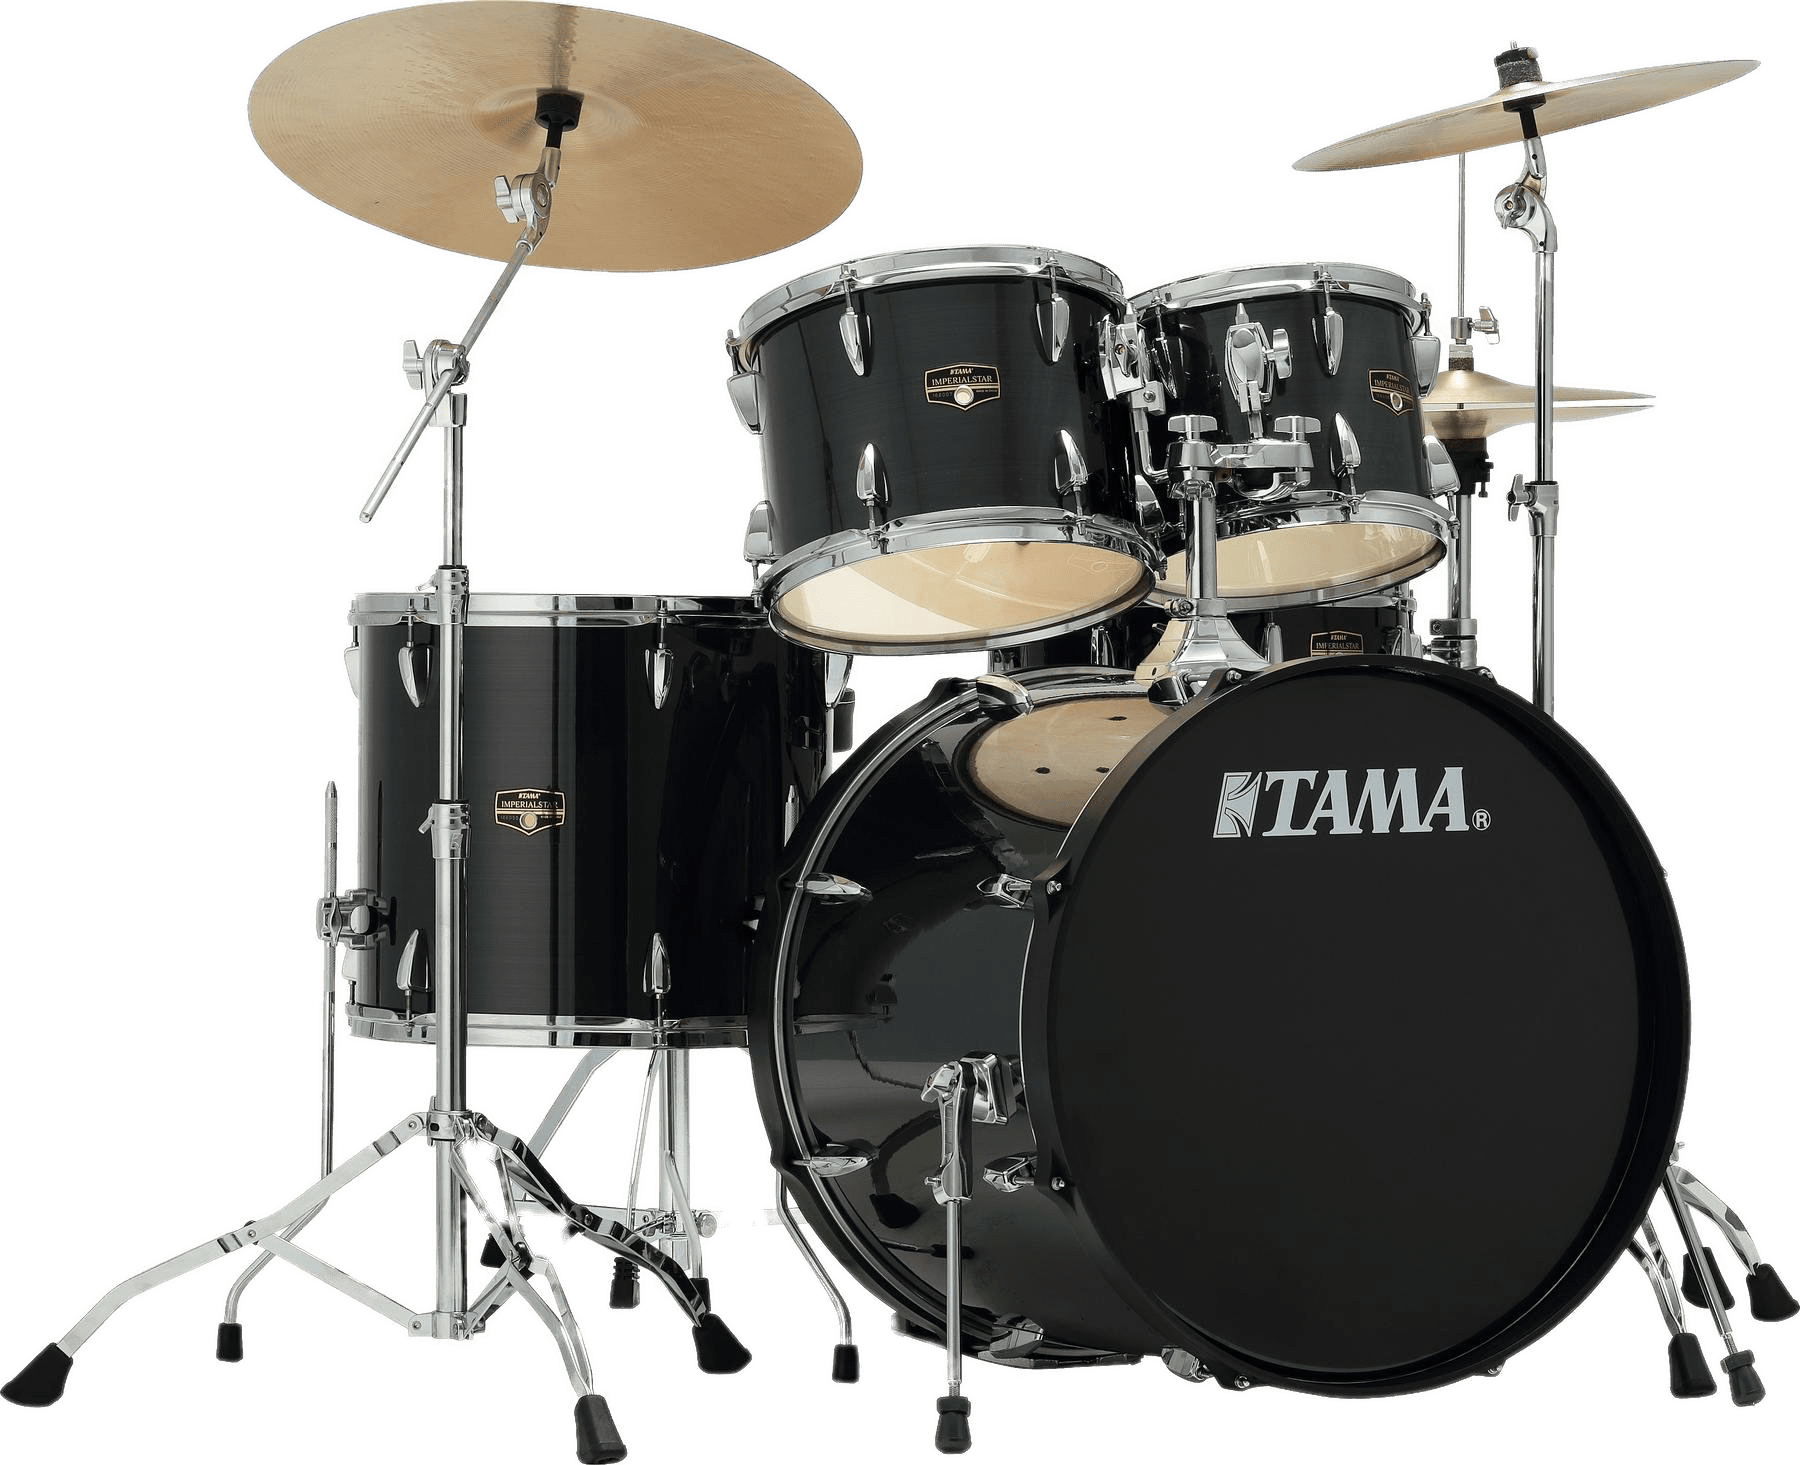 Large drum kit transparent. Xylophone clipart cymbal